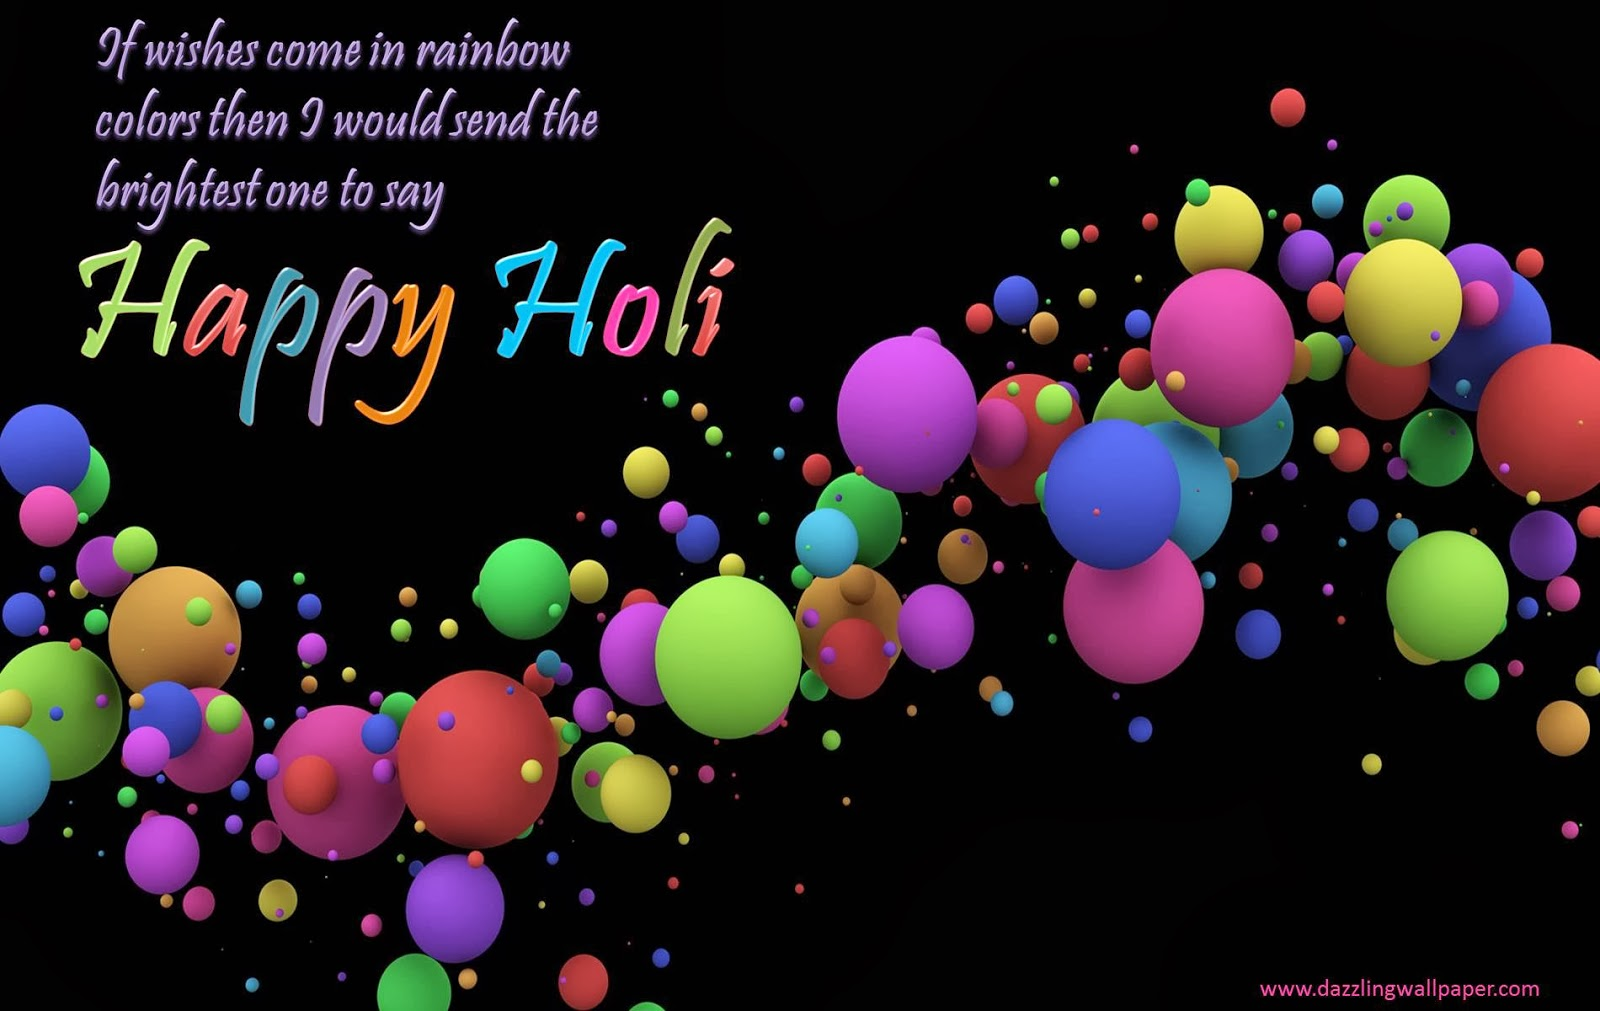 Happy Holi 2014 Animated 3D wallpapers Download Happy Holi 1600x1011